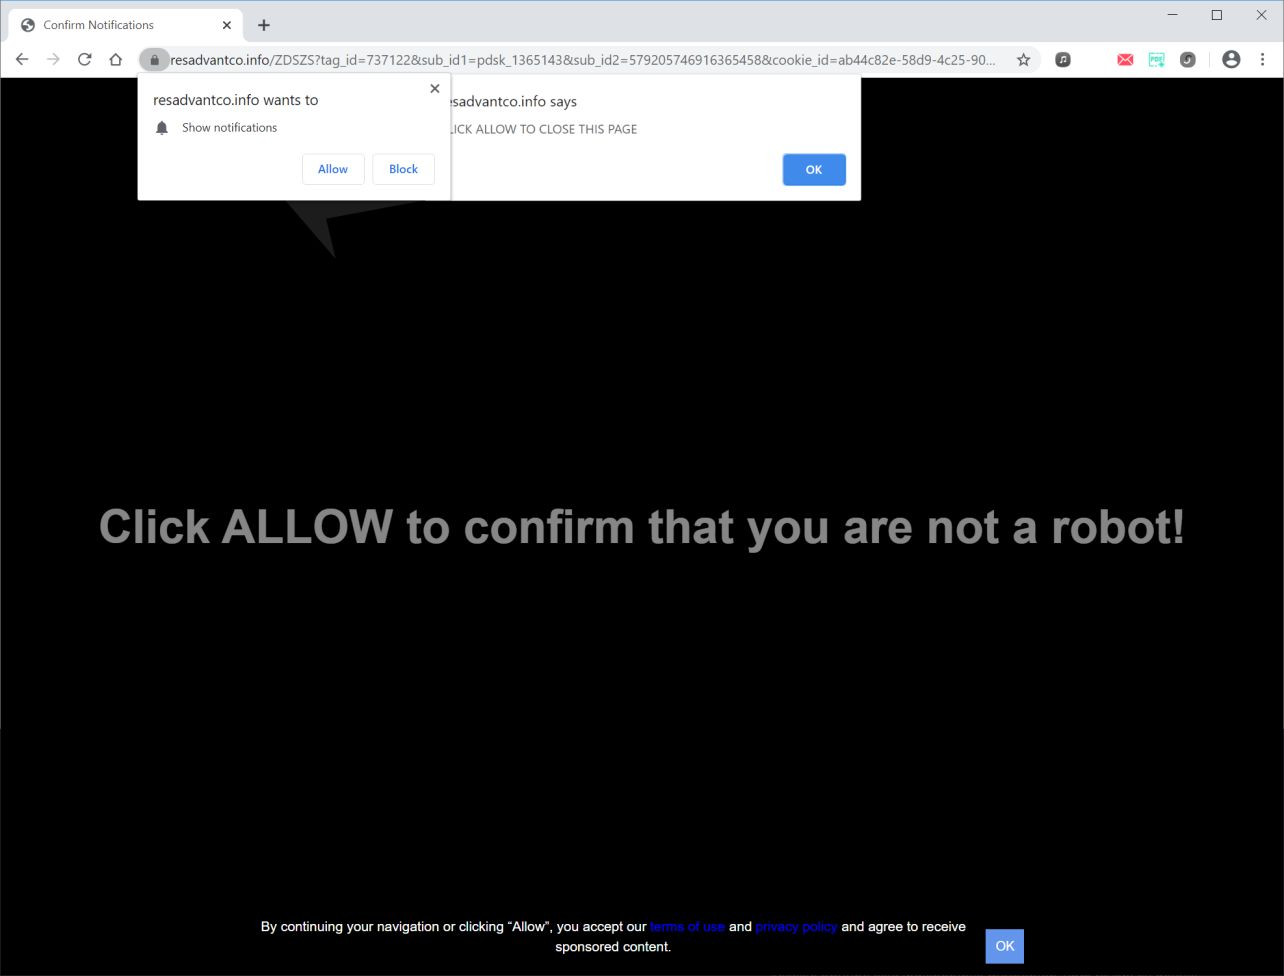 Image: Chrome browser is redirected to Resadvantco.info